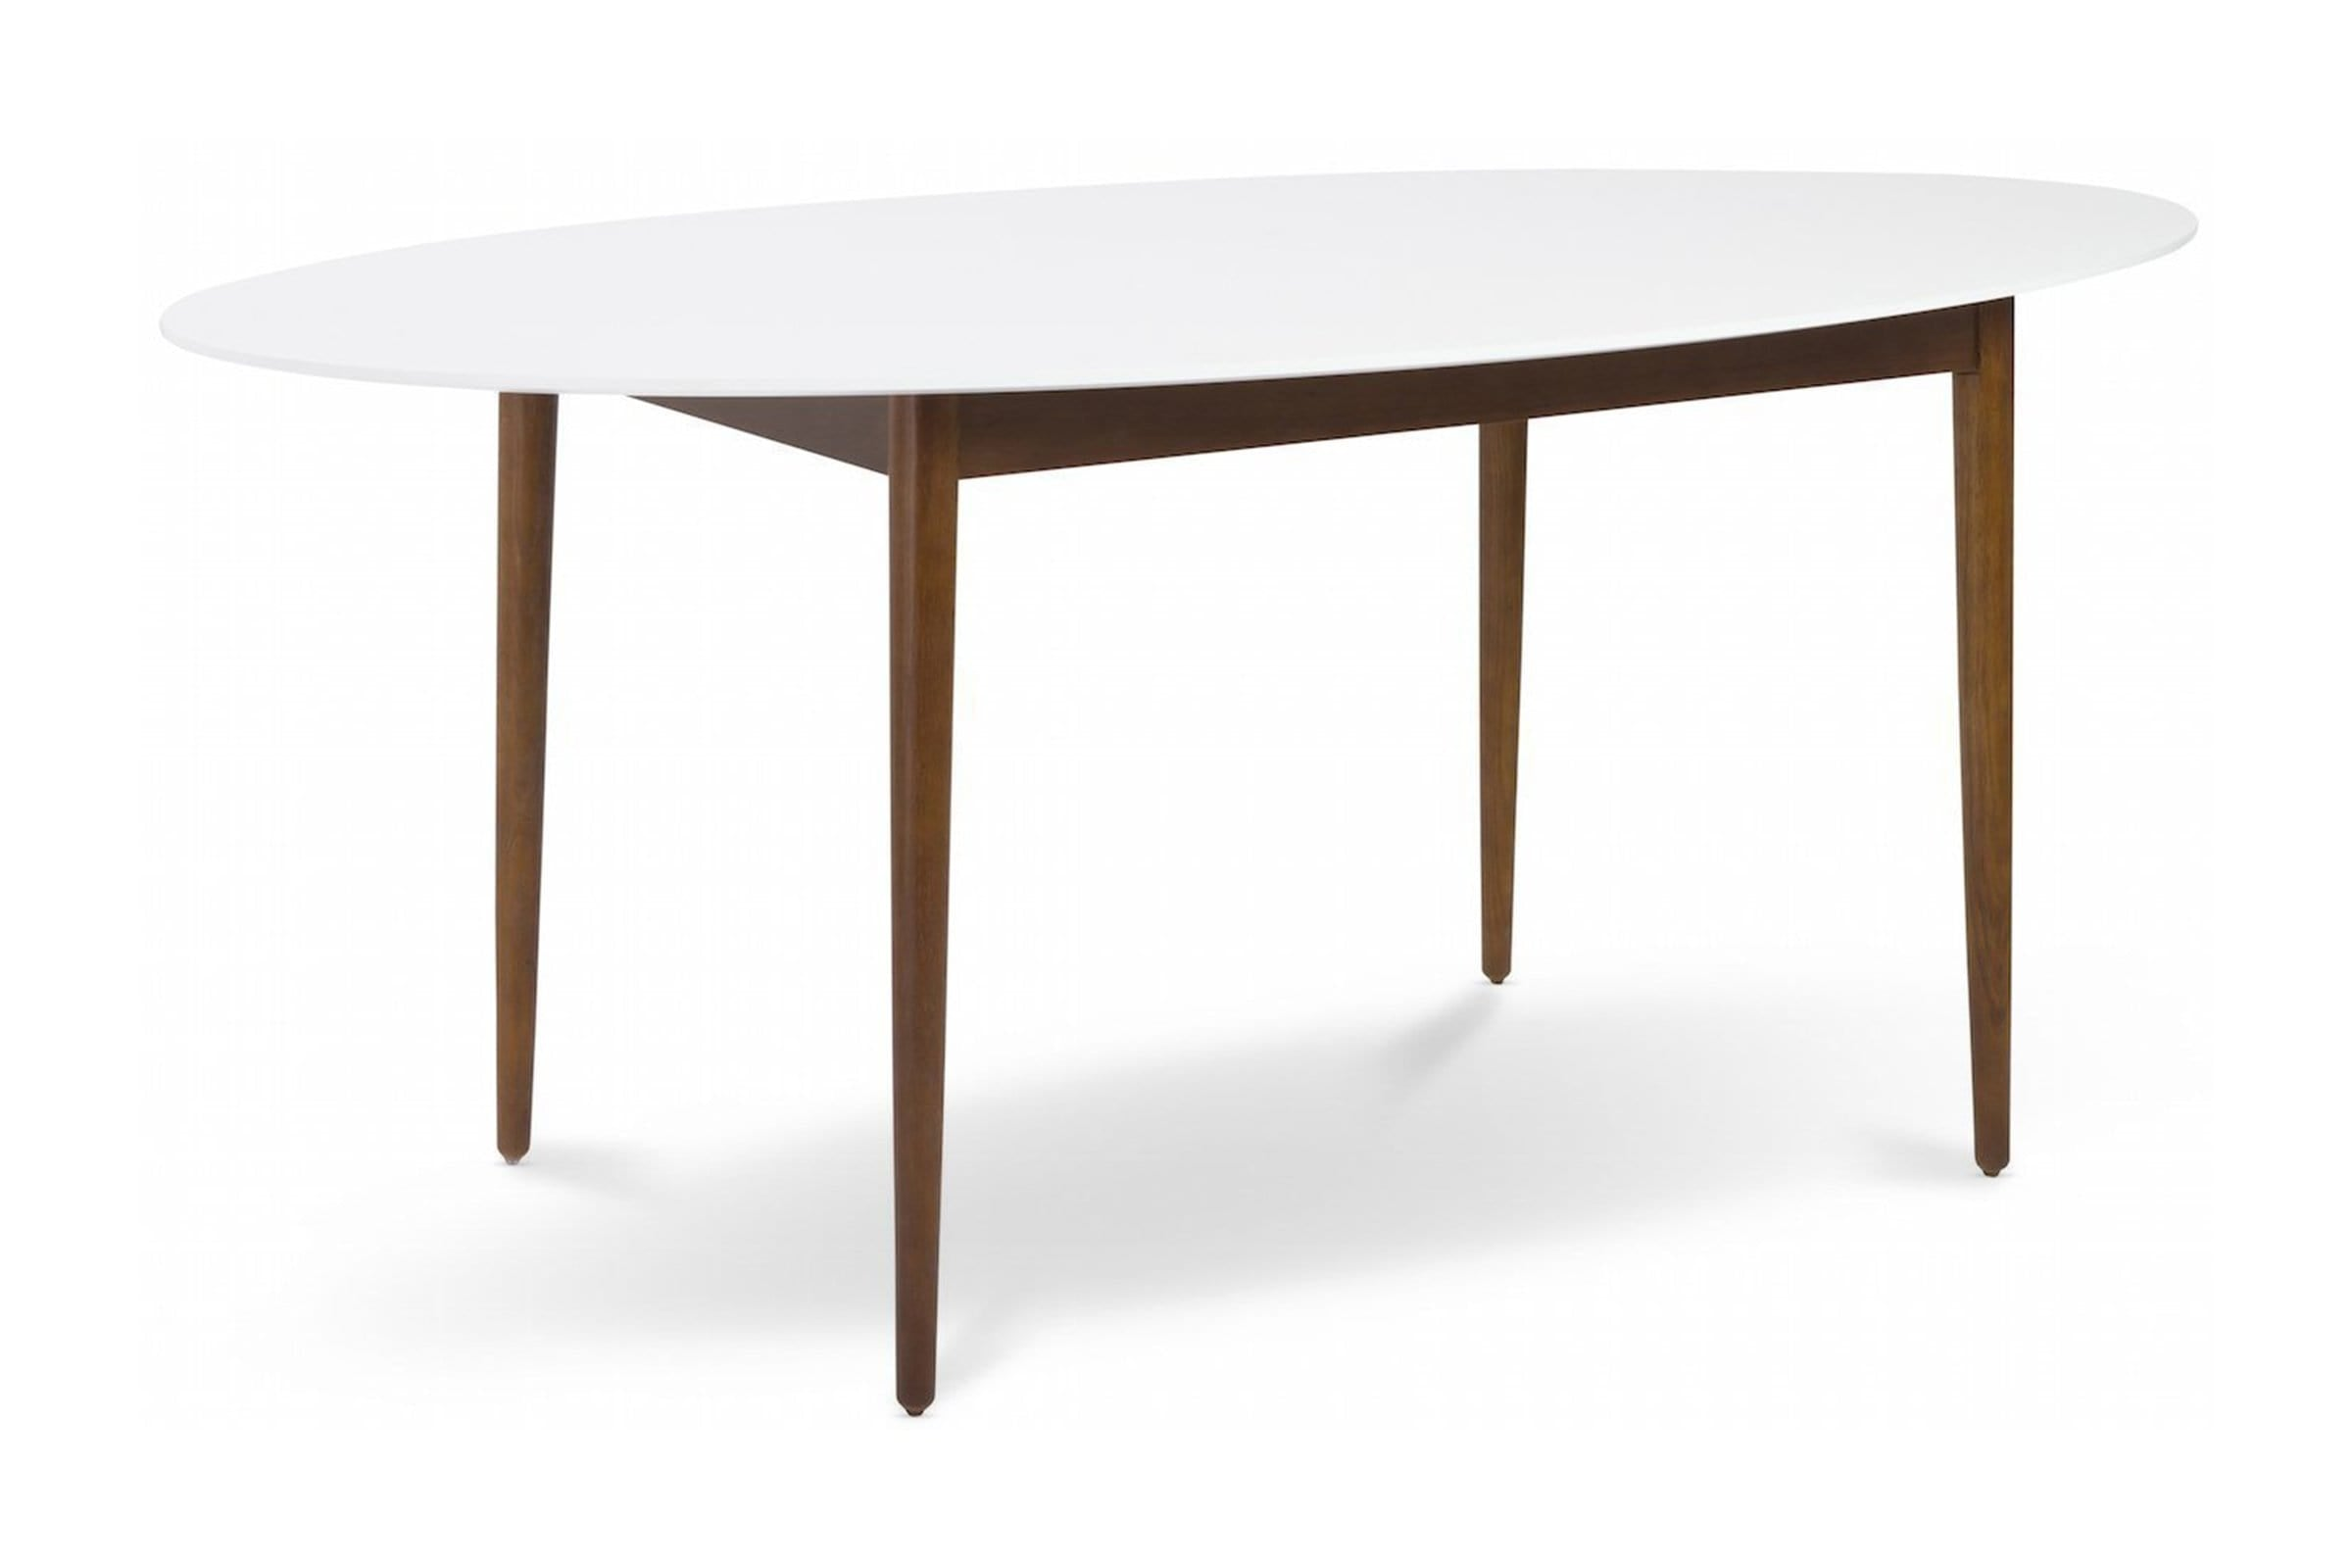 Whitaker Oval Dining Table - Modern Dining Tables Sold by Apt2B